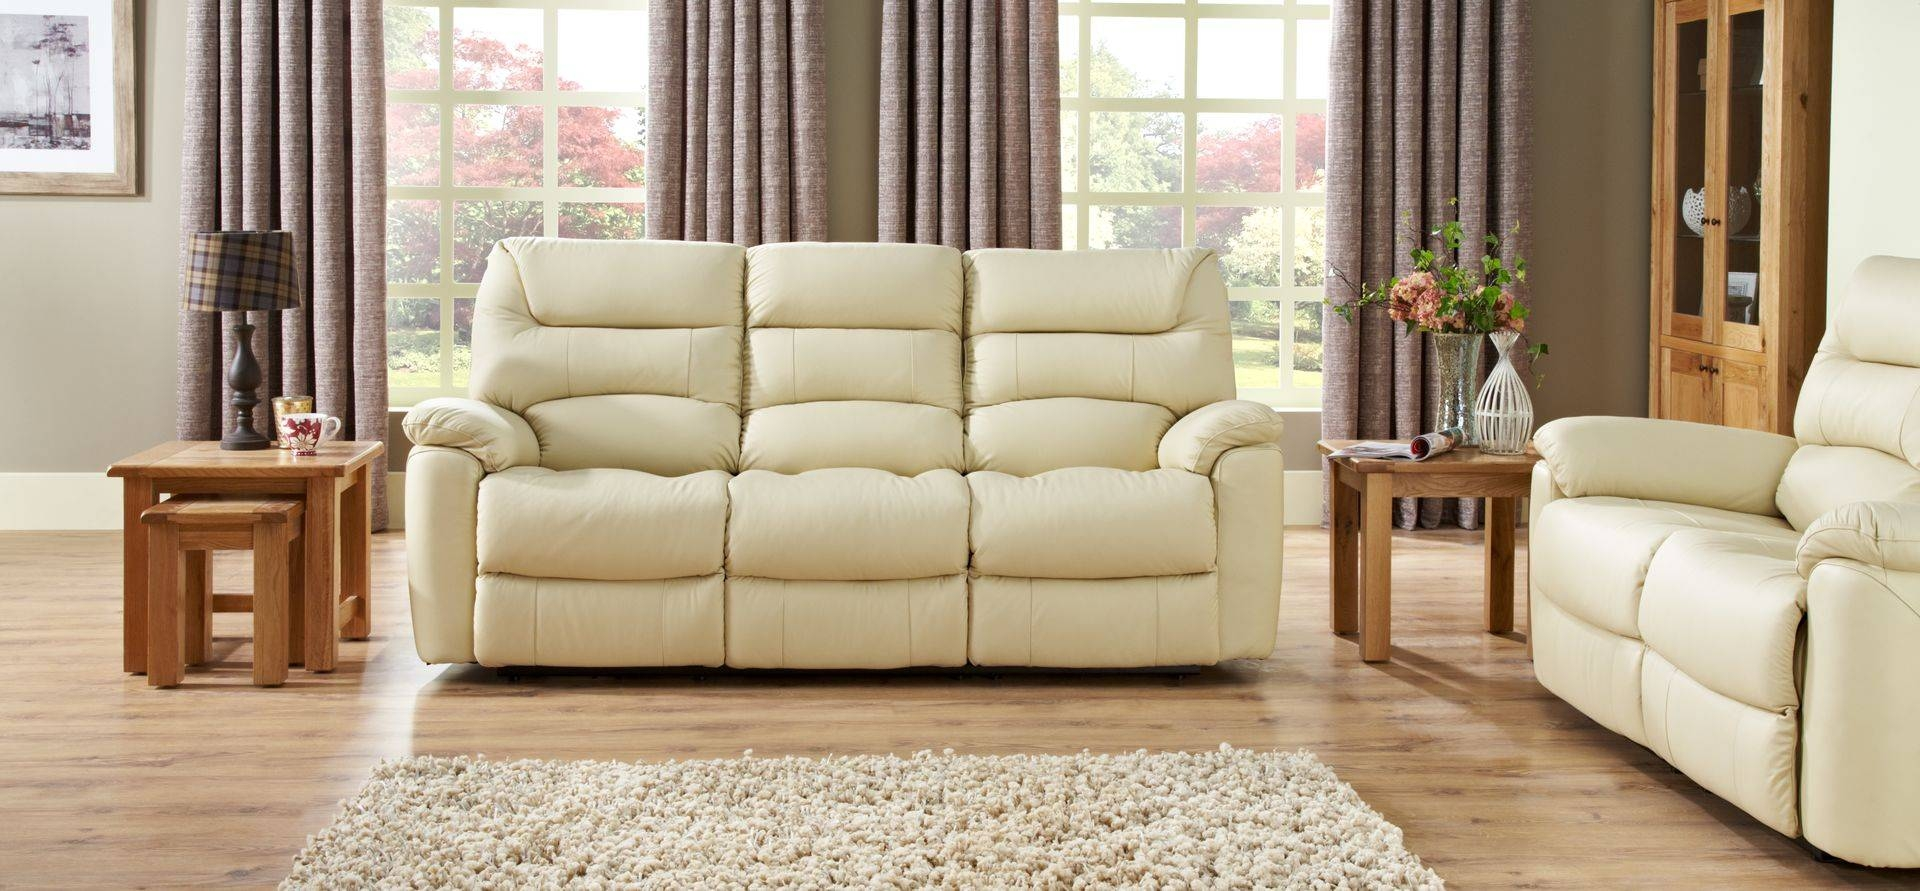 La-Z-Boy Manhattan 3 Seater Manual Recliner Sofa | Scs for Lazy Boy Manhattan Sofas (Image 6 of 15)